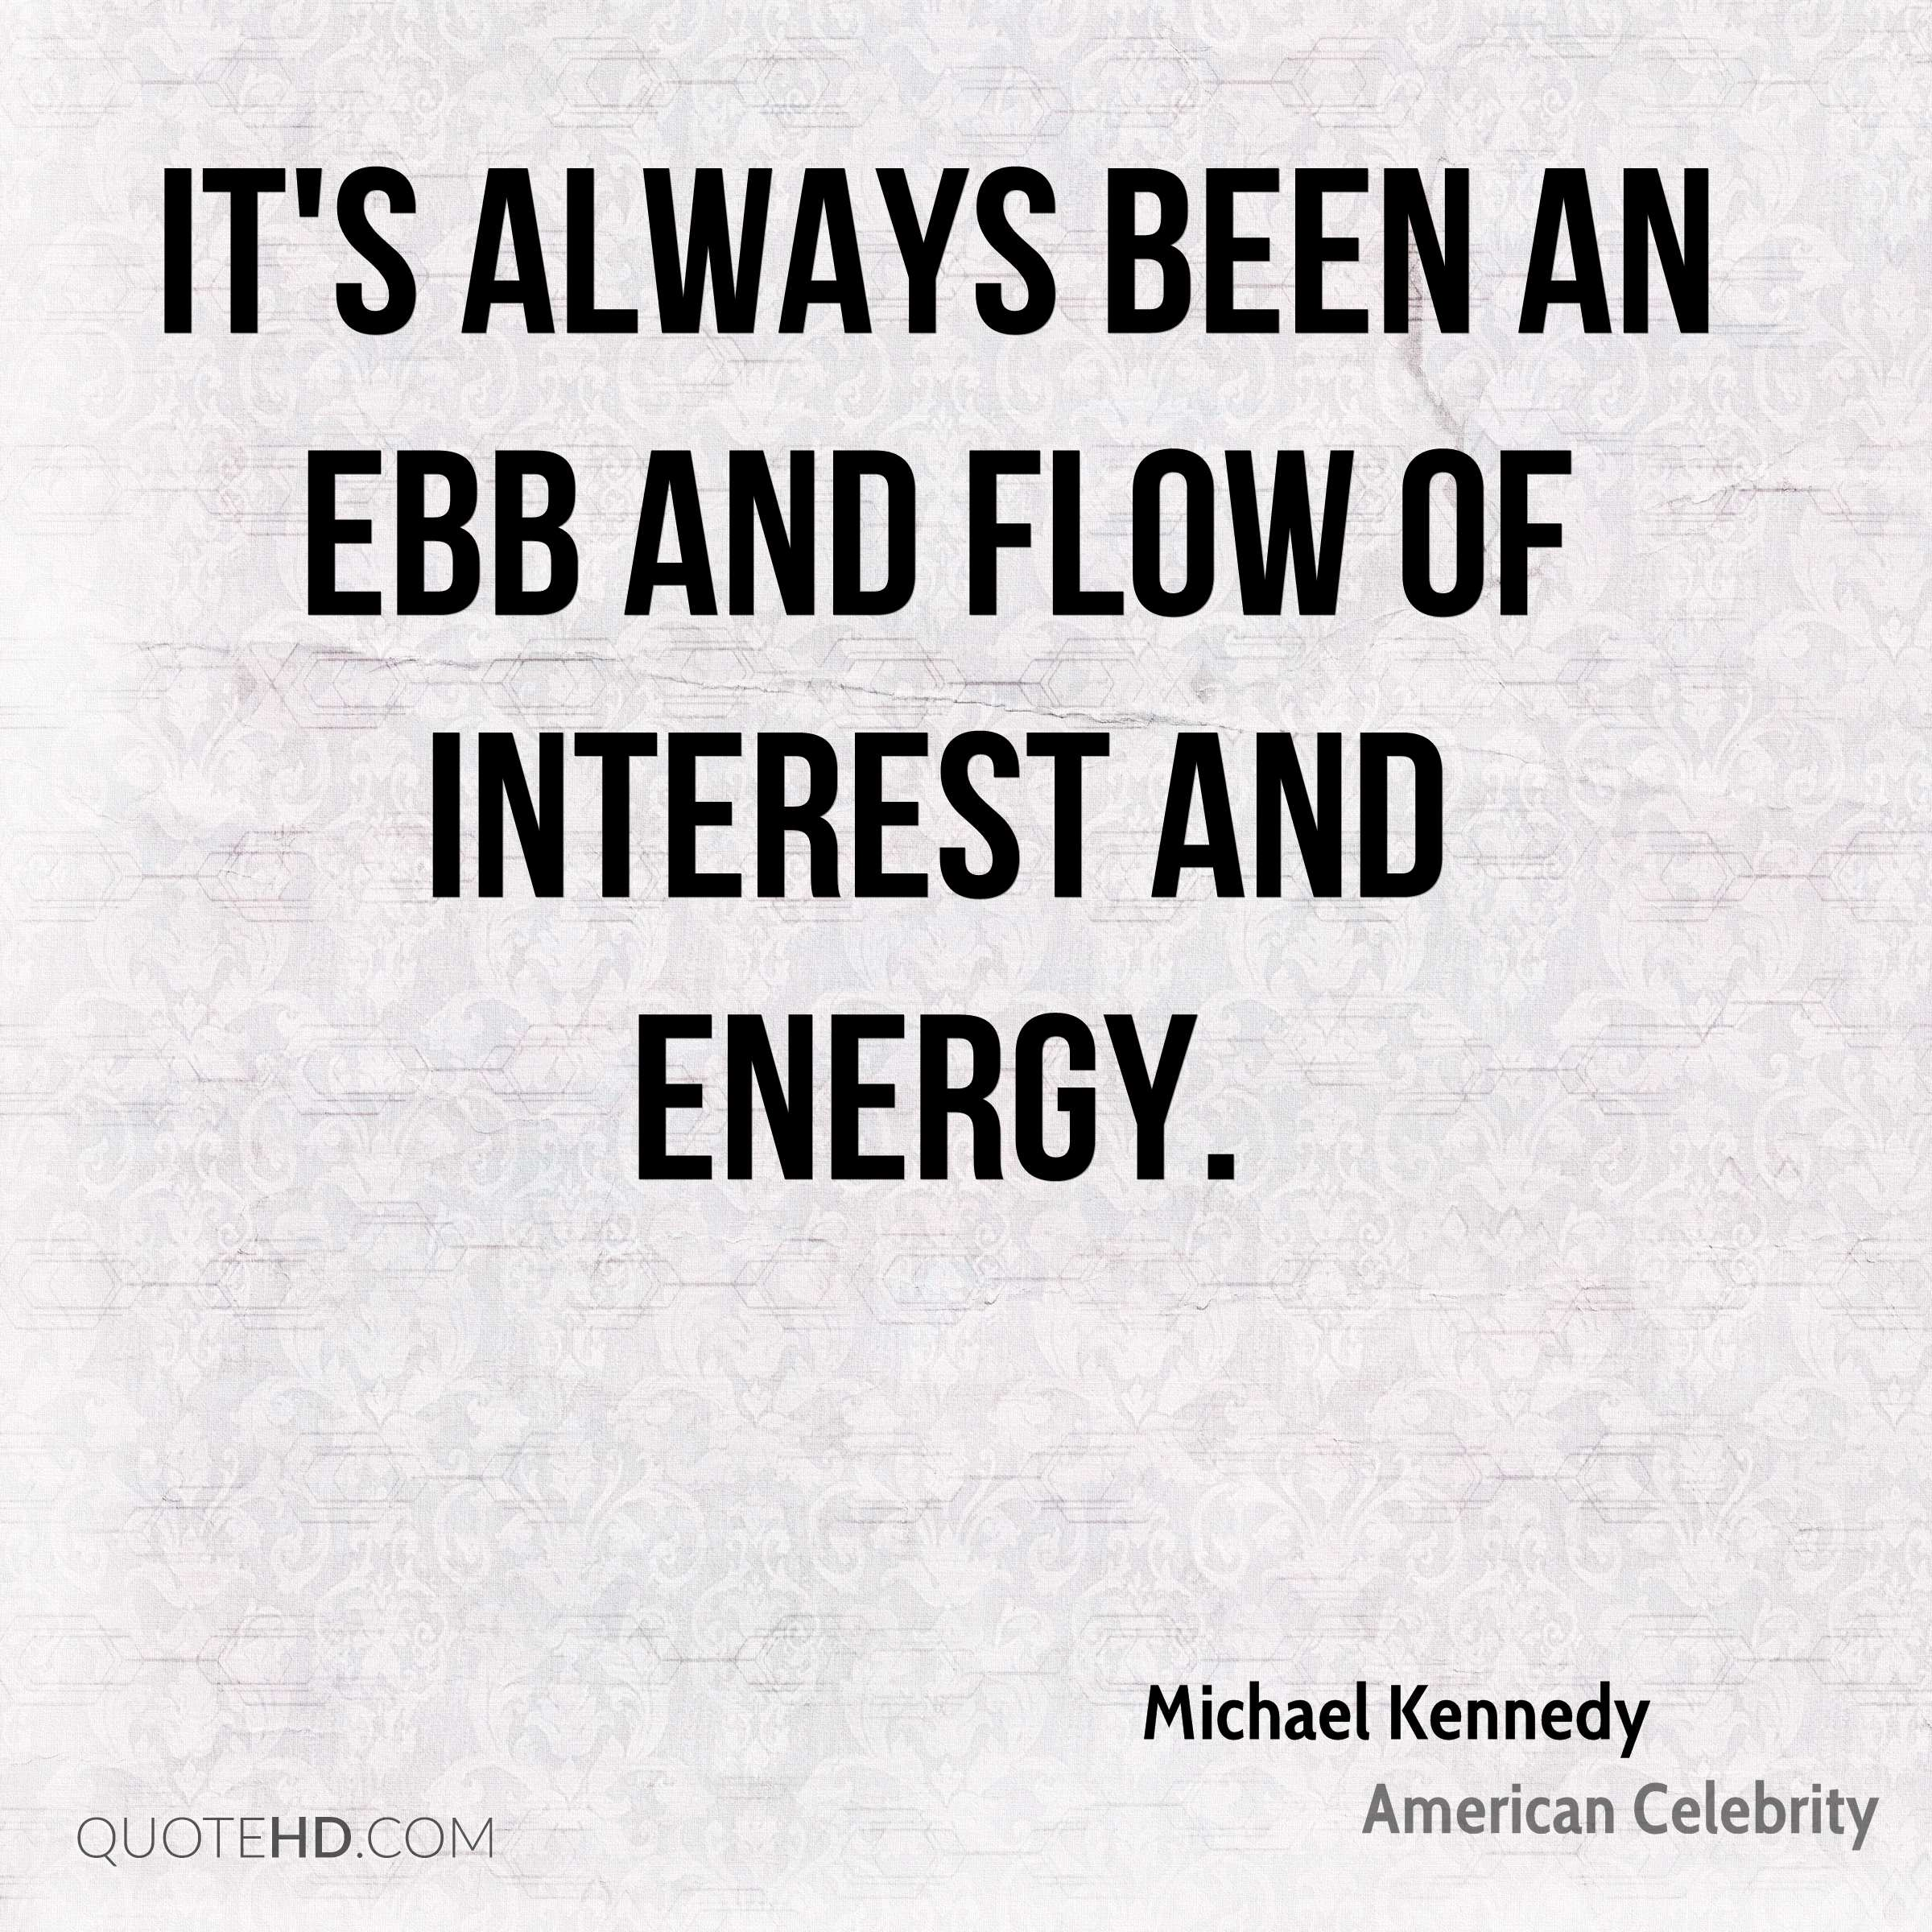 It's always been an ebb and flow of interest and energy.